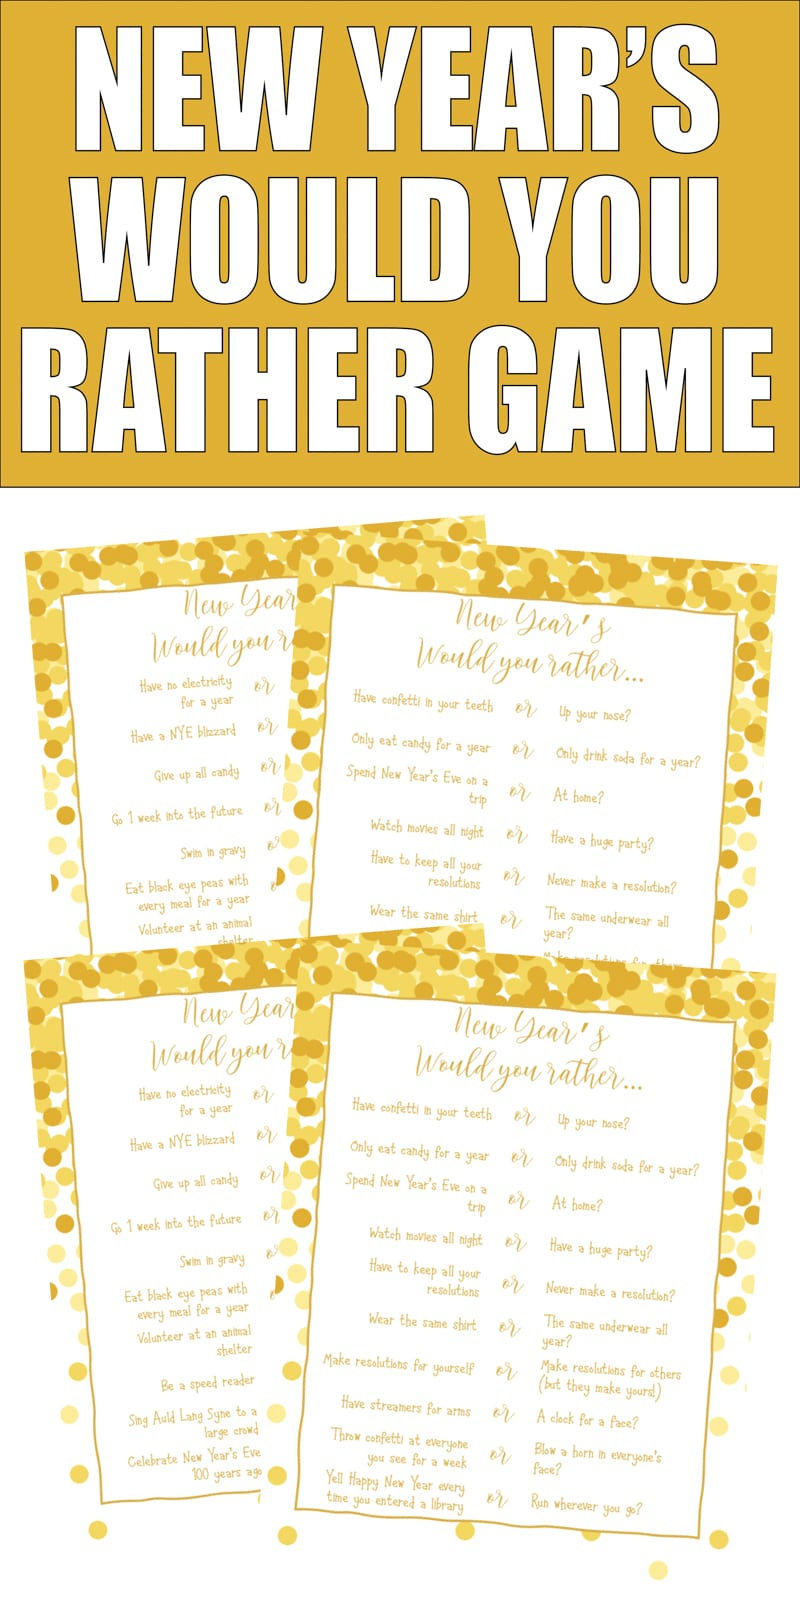 These fun New Year's Eve would you rather questions are perfect for a New Year's Eve party game! Play with couples, kids, or families and try to match what other people said to win a point!